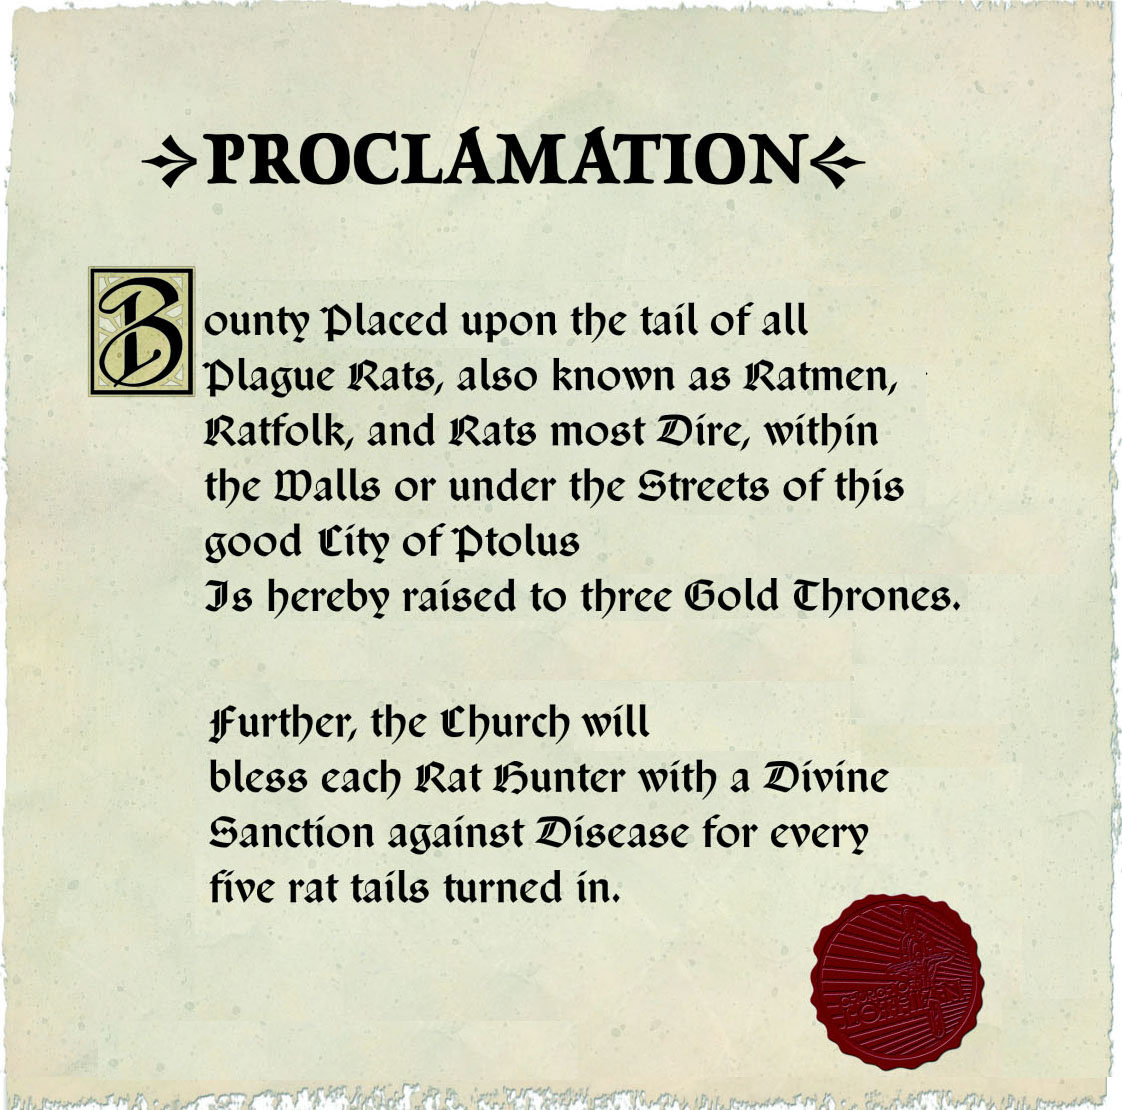 Proclamation of Rat Bounty